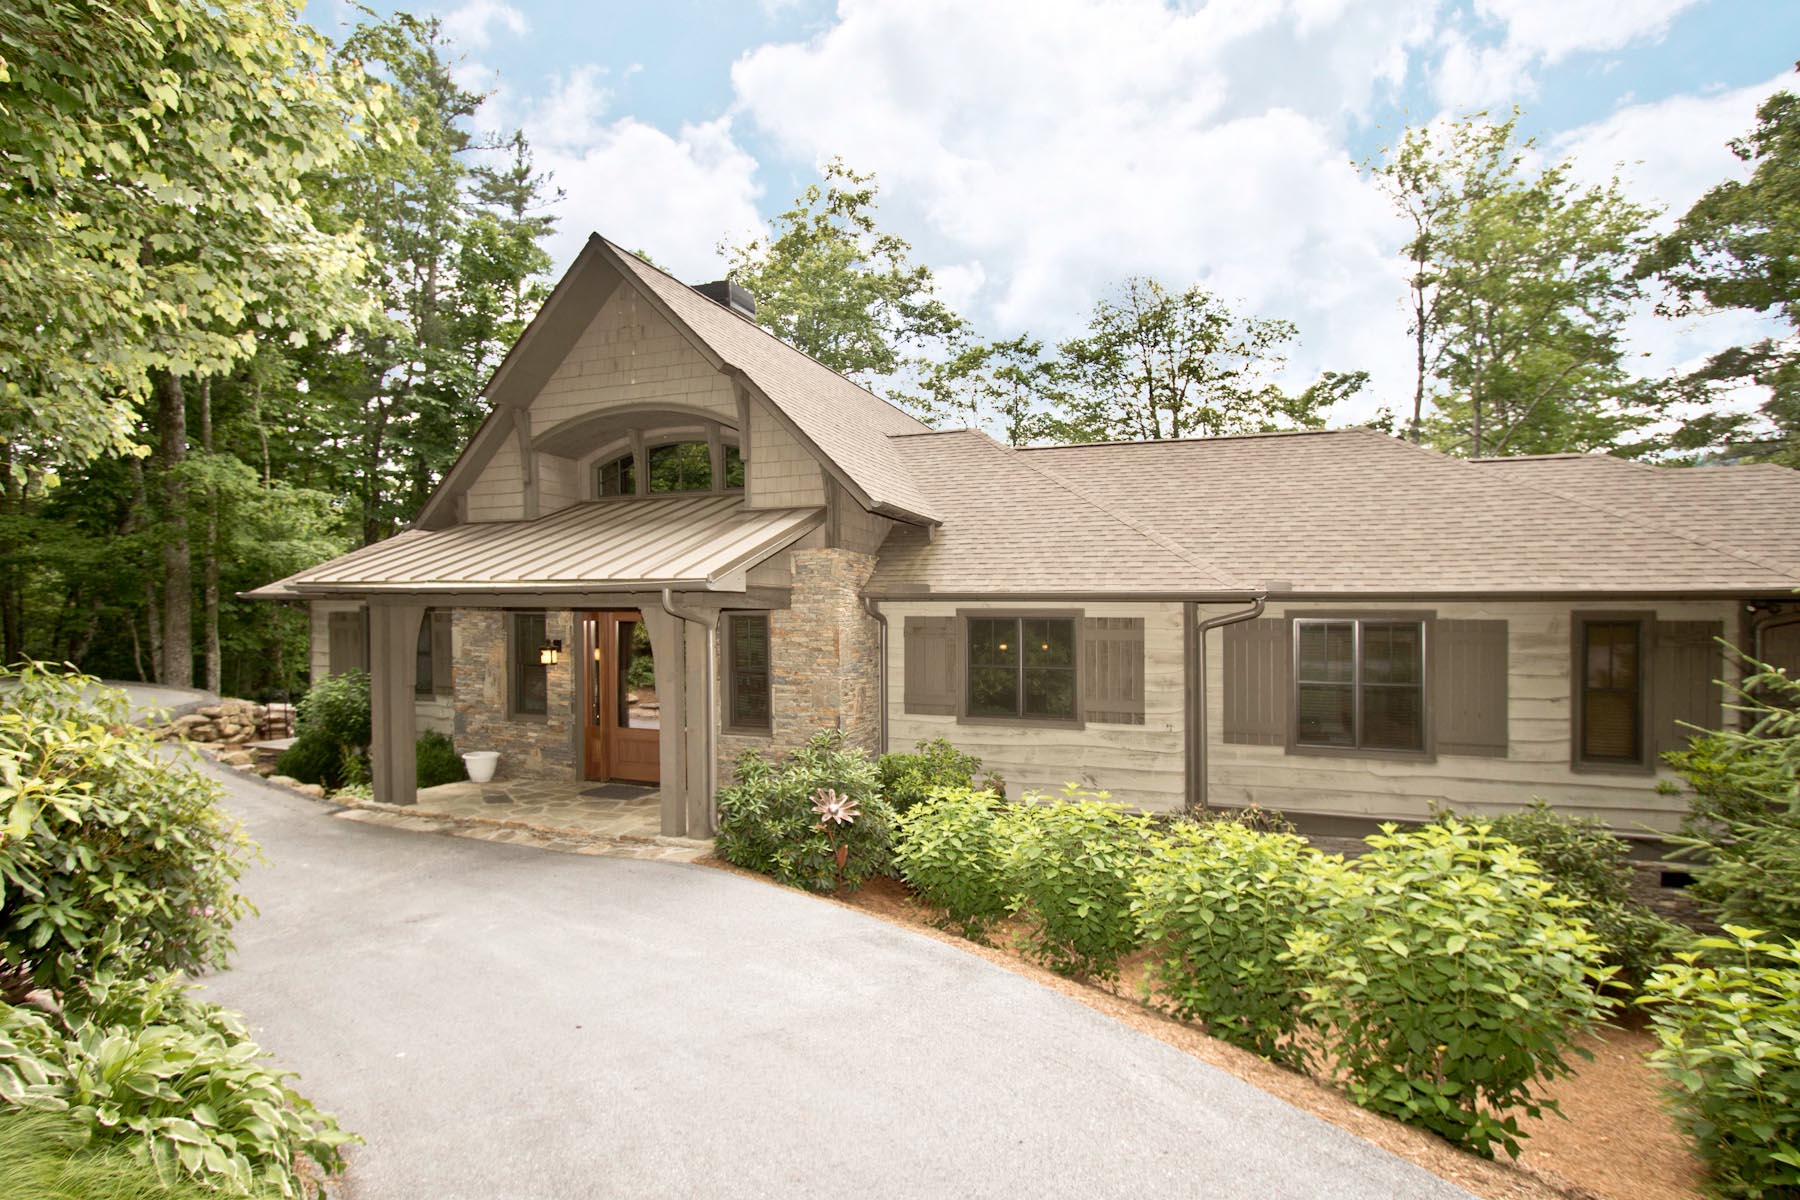 Single Family Home for Active at 55 Lilium Lane Cashiers, North Carolina 28717 United States